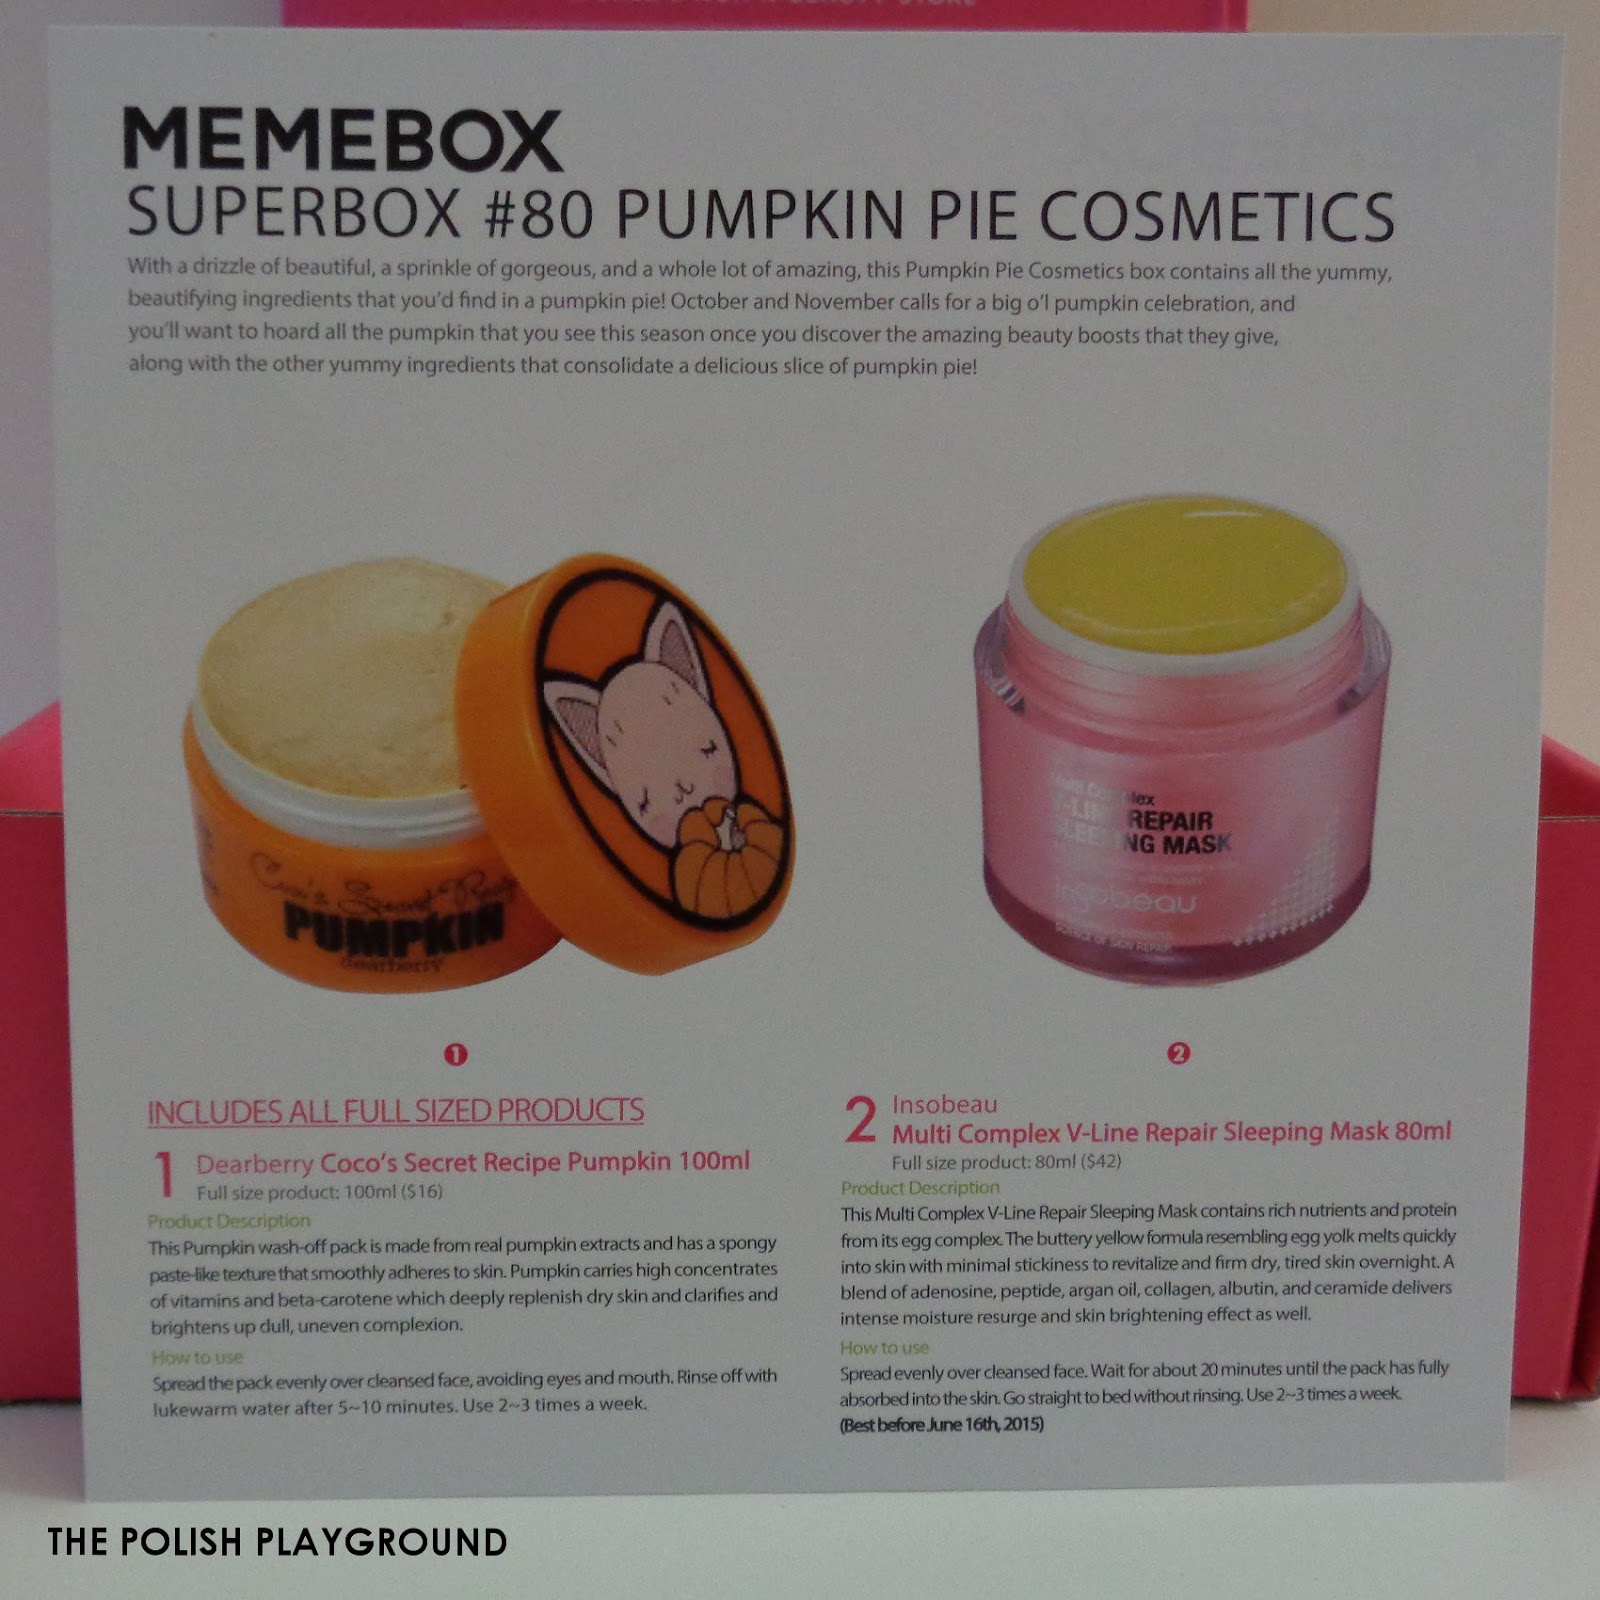 Memebox Superbox #80 Pumpkin Pie Cosmetics Unboxing